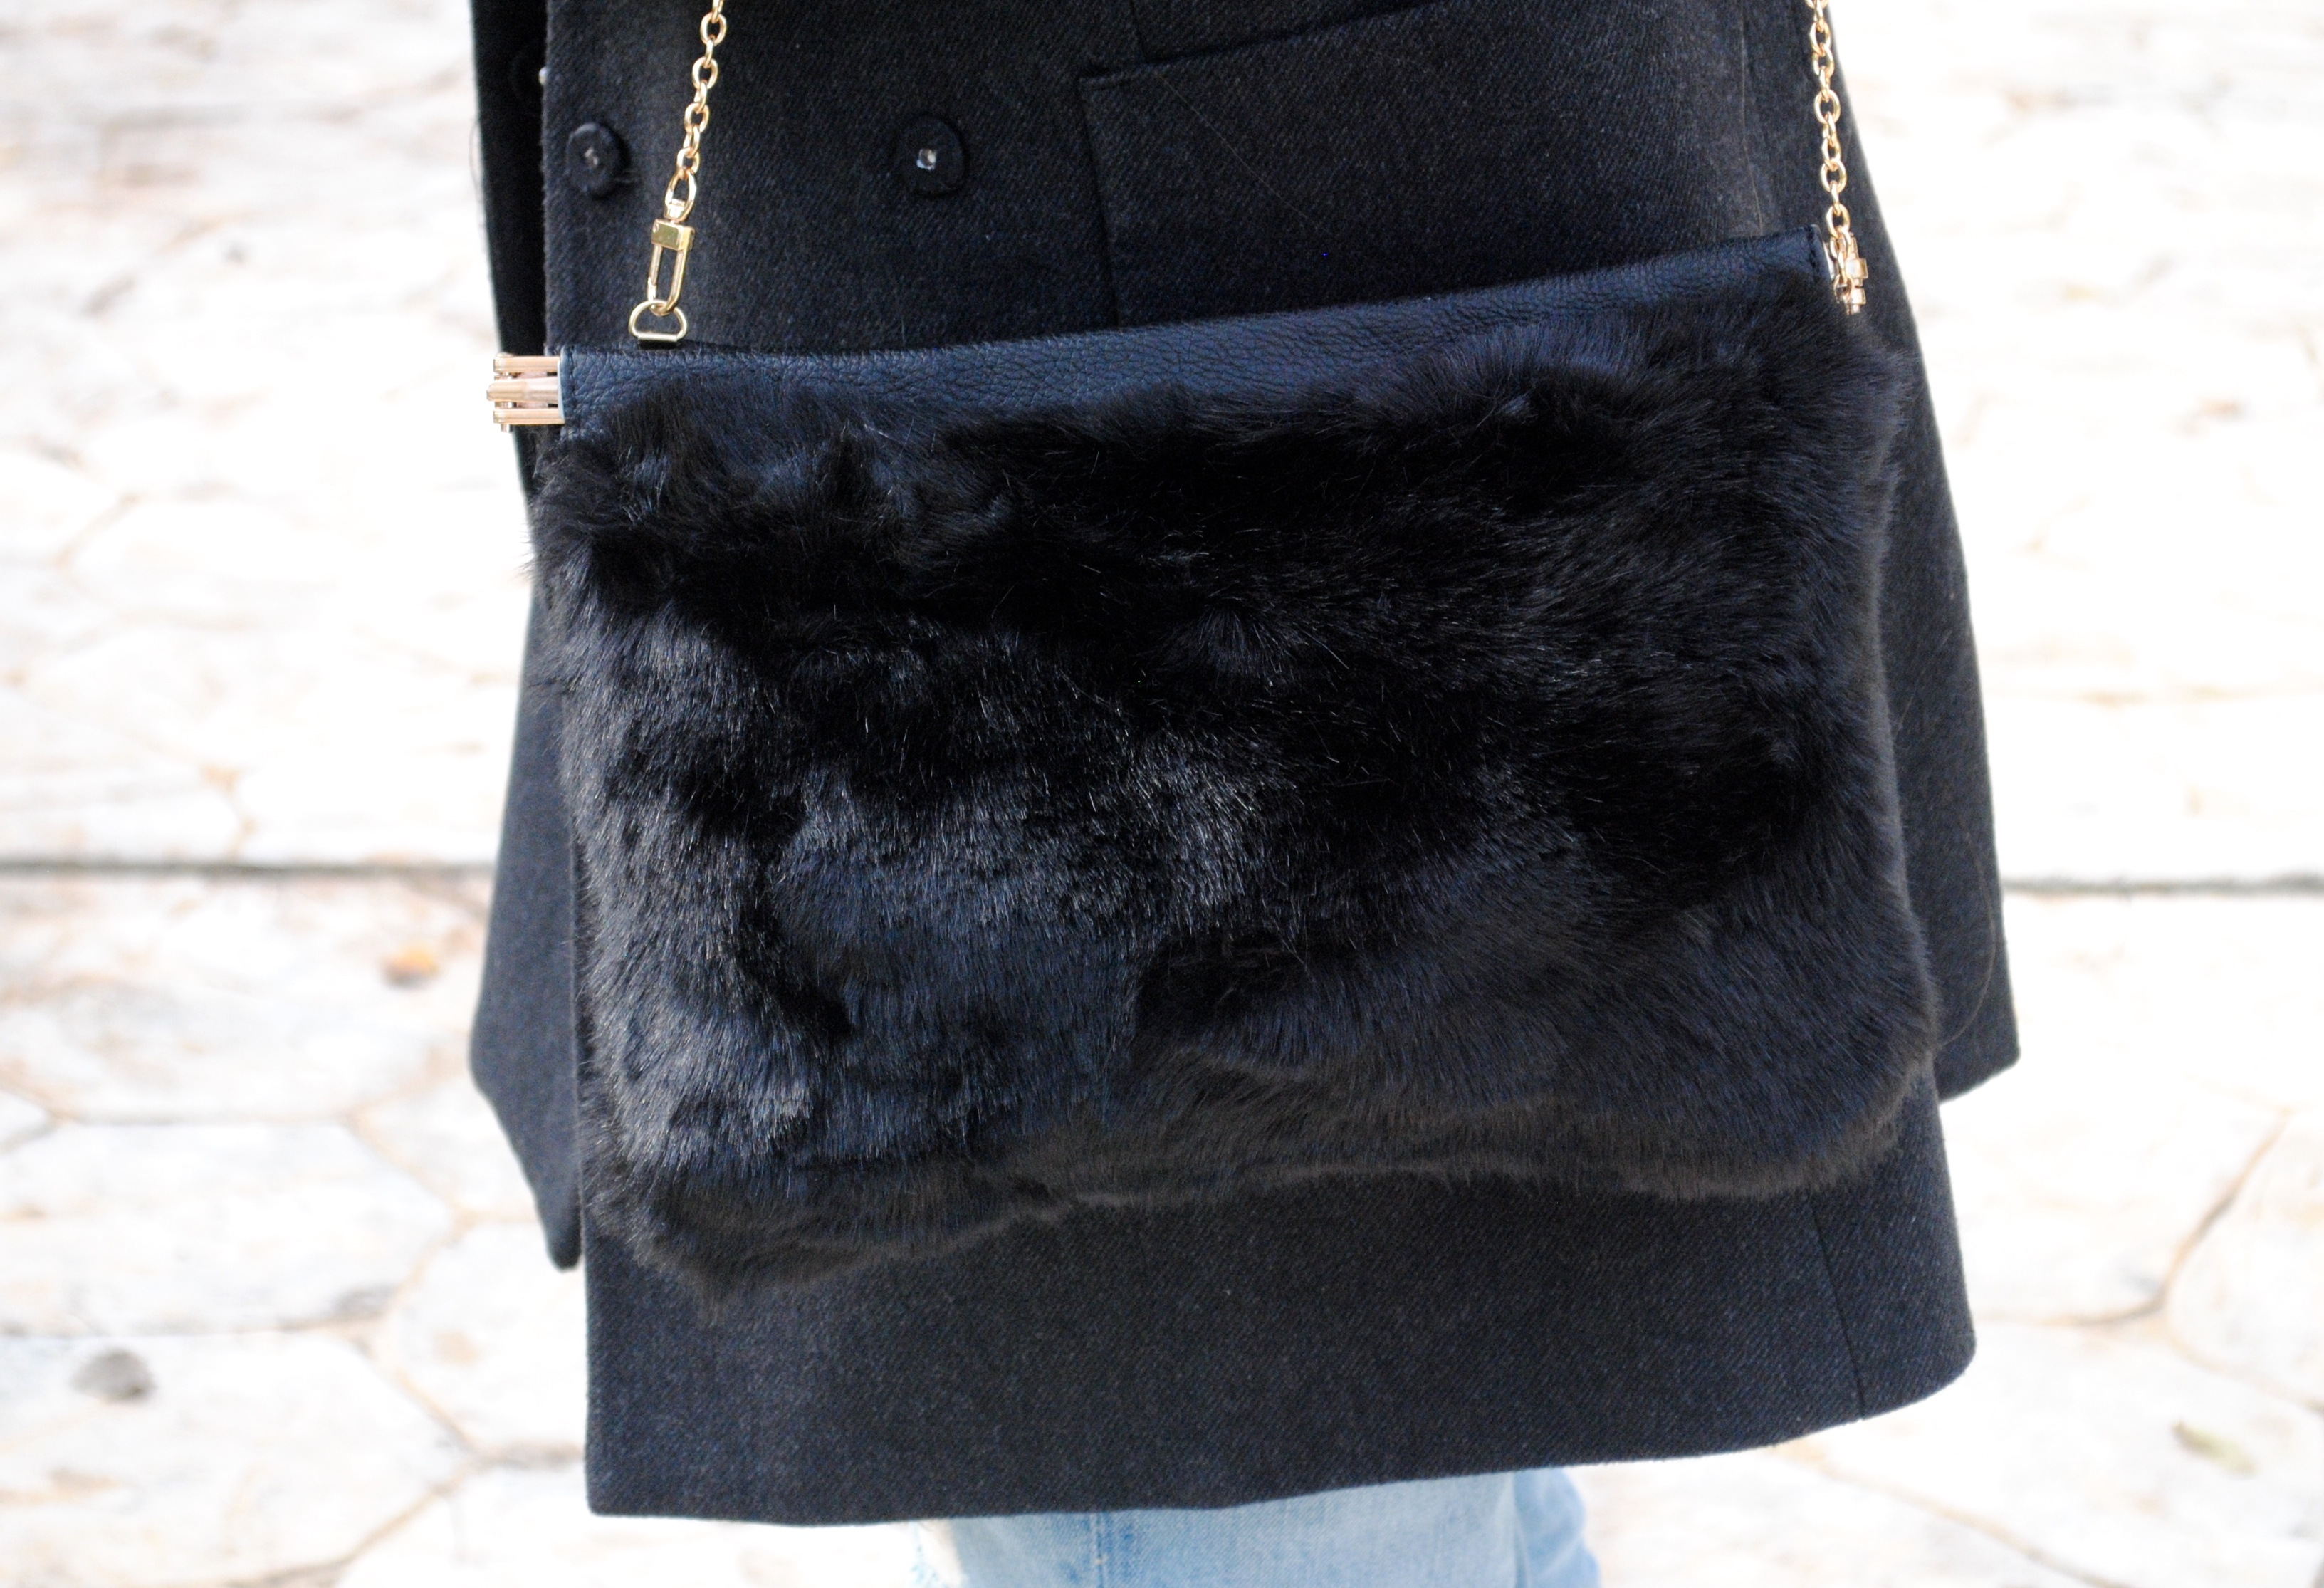 black fur bag